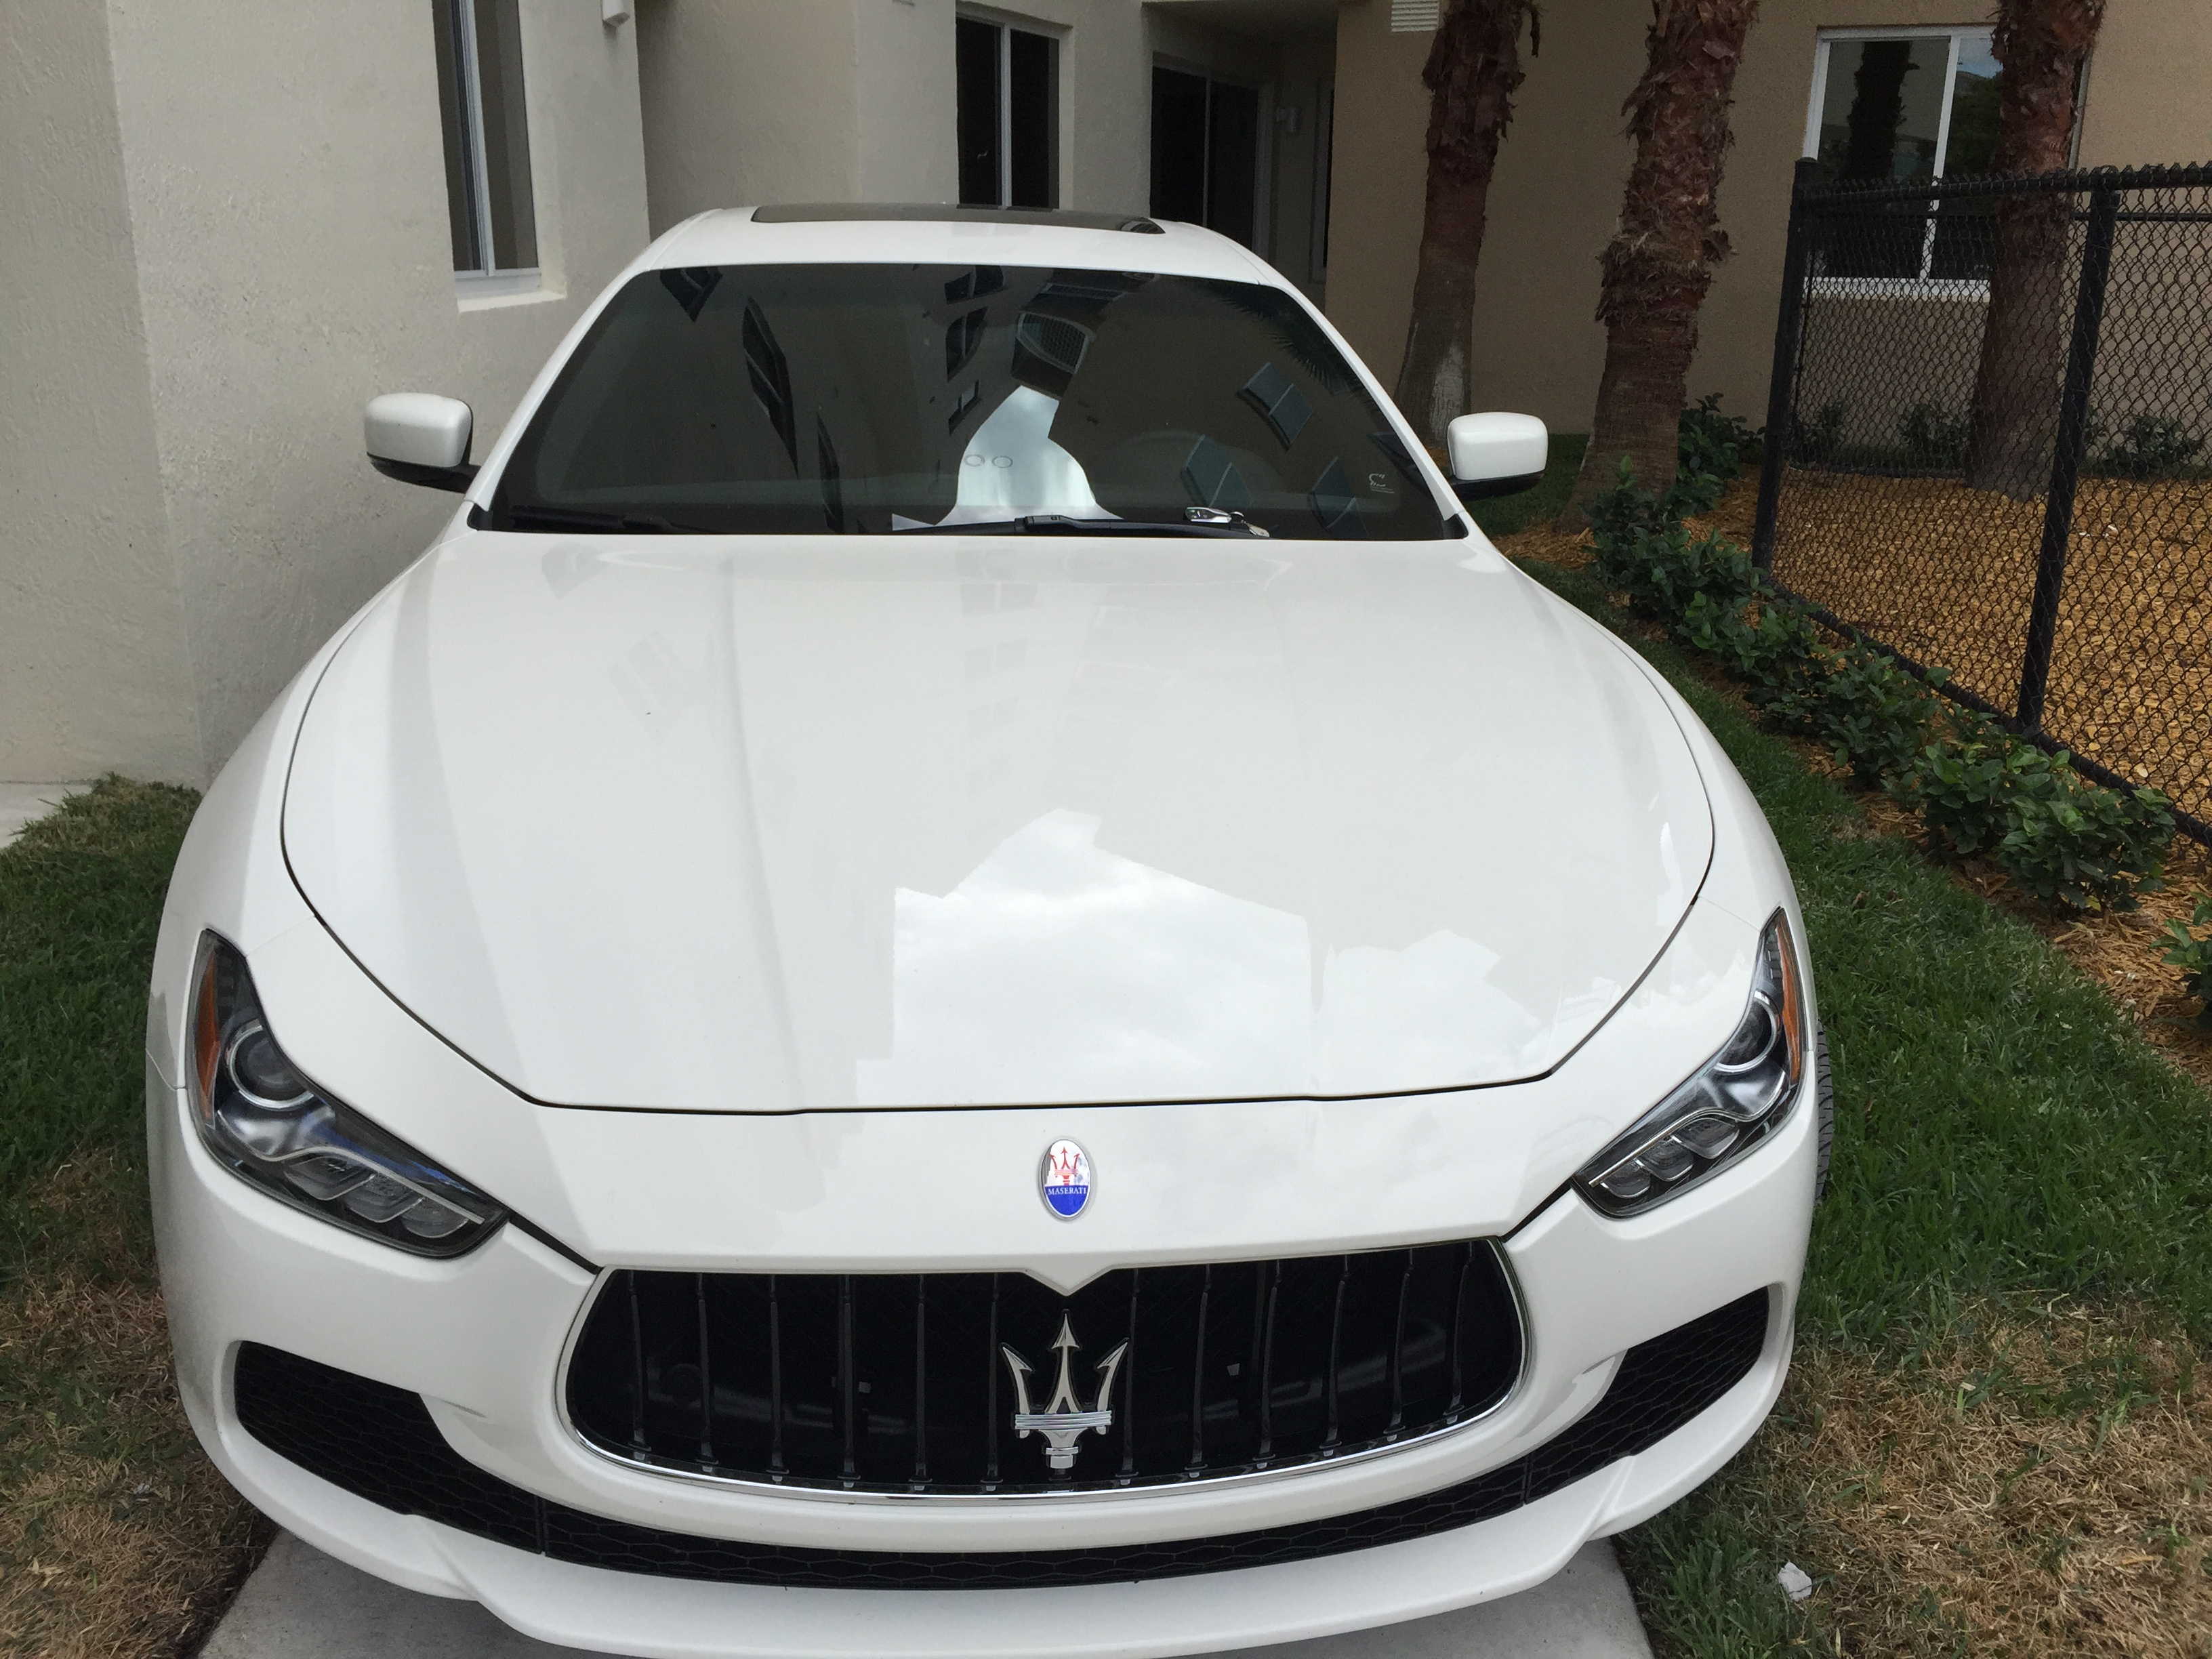 3M Miami Mobile Window Tinting-Car -Residential- Commercial- Marine Doral,Medley image 23